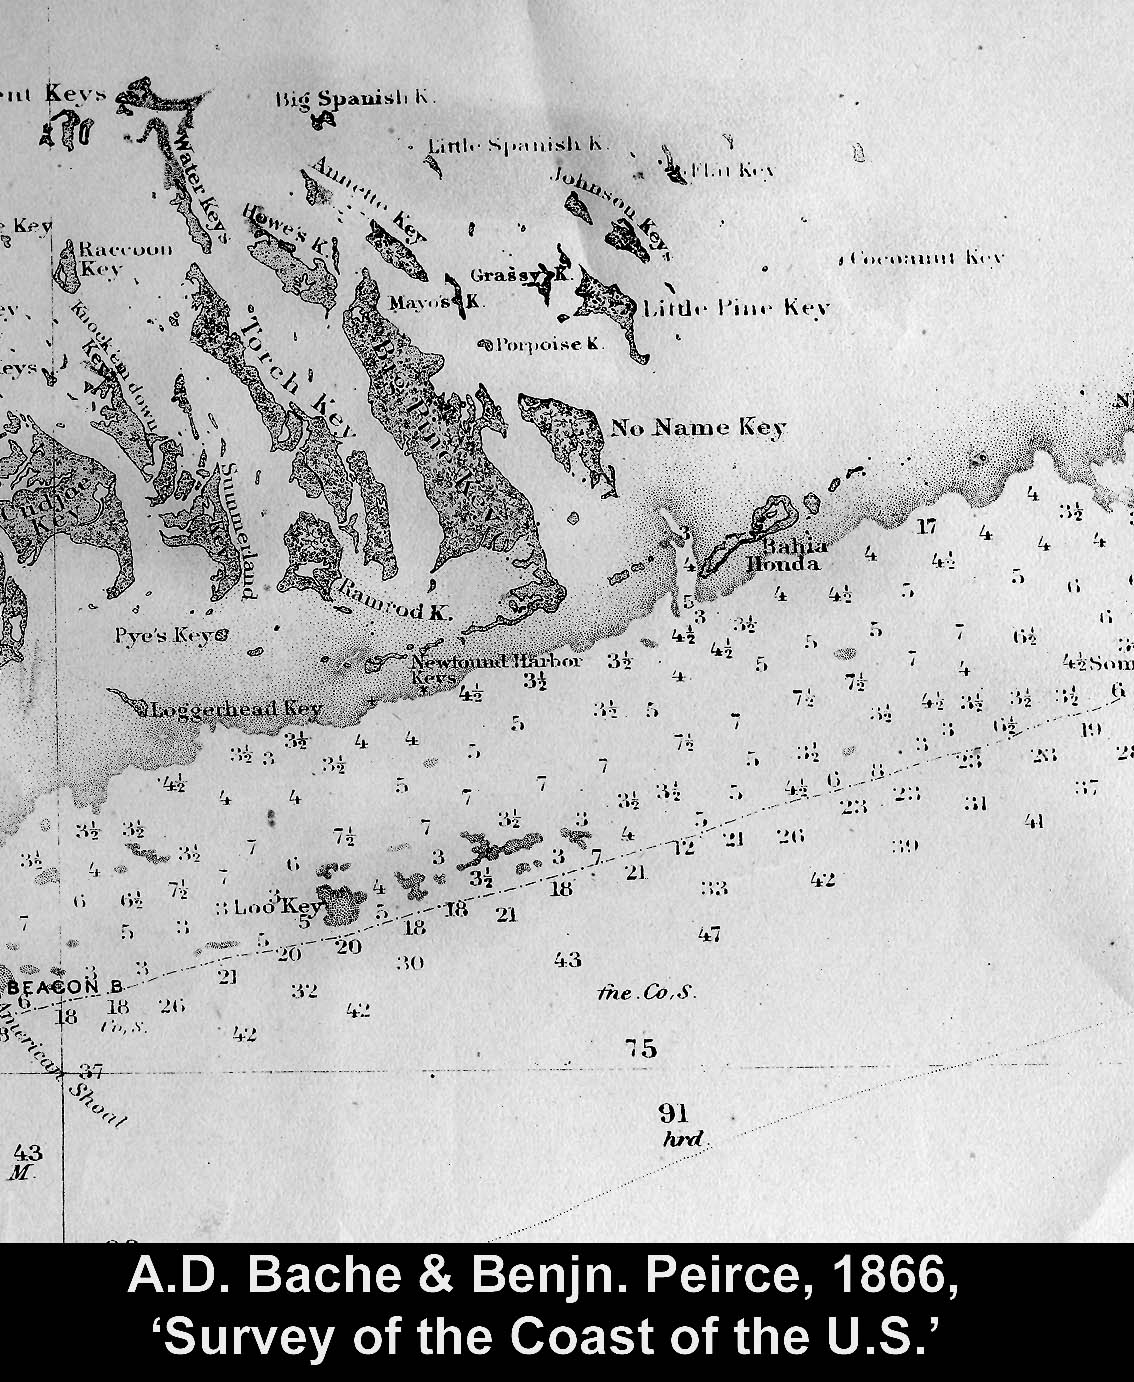 1866 Coastal Survey